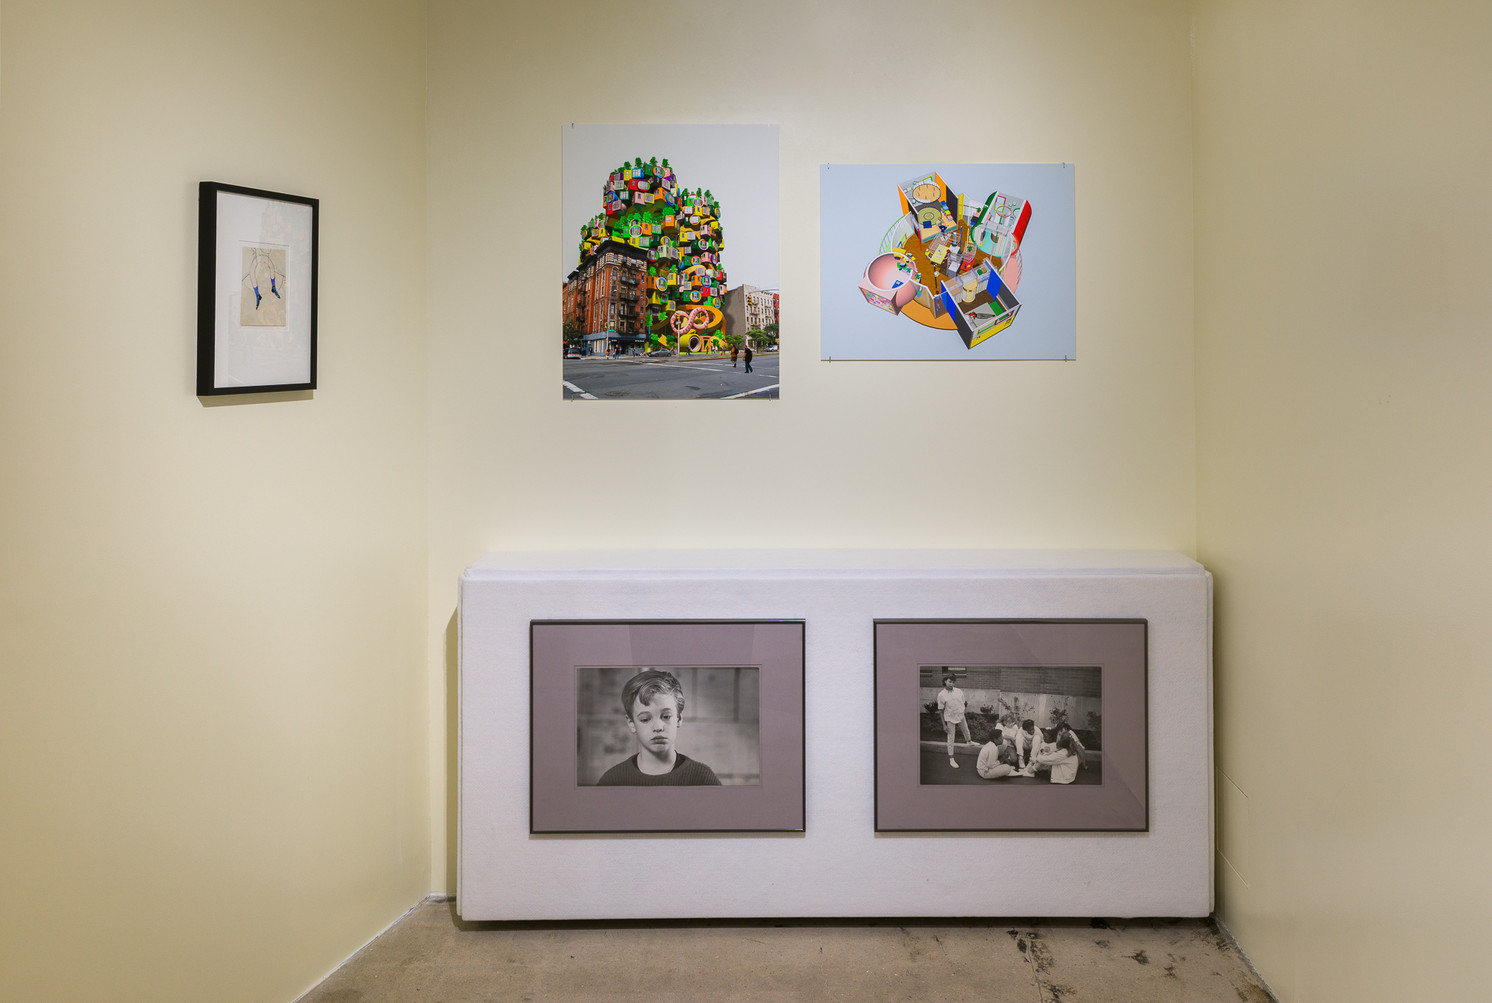 Left: Meret Oppenheim, Untitled, 1936. Paper, pencil, gouache. Courtesy of collection Design Museum Den Bosch/NL. Top left: Arakawa and Madeline gins, Hotel Reversible Destiny—124 West Houston Street, New York. 2006. Digital photomontage © 2008 Estate of Madeline Gins, reproduced with permission of the Estate of Madeline Gins, courtesy of Reversible Destiny Foundation. Top right: Arakawa and Madeline Gins, Reversible Destiny Lofts—Mitaka (In Memory of Helen Keller), 2004. Digital Rendering. © 2019 Estate of Madeline Gins, reproduced with permission of the Estate of Madeline Gins, courtesy of Reversible Destiny Foundation. Bottom: Marc Kokopeli, Untitled, 2019. Framed archival prints, fabric, wood, steel Courtesy of the artist.